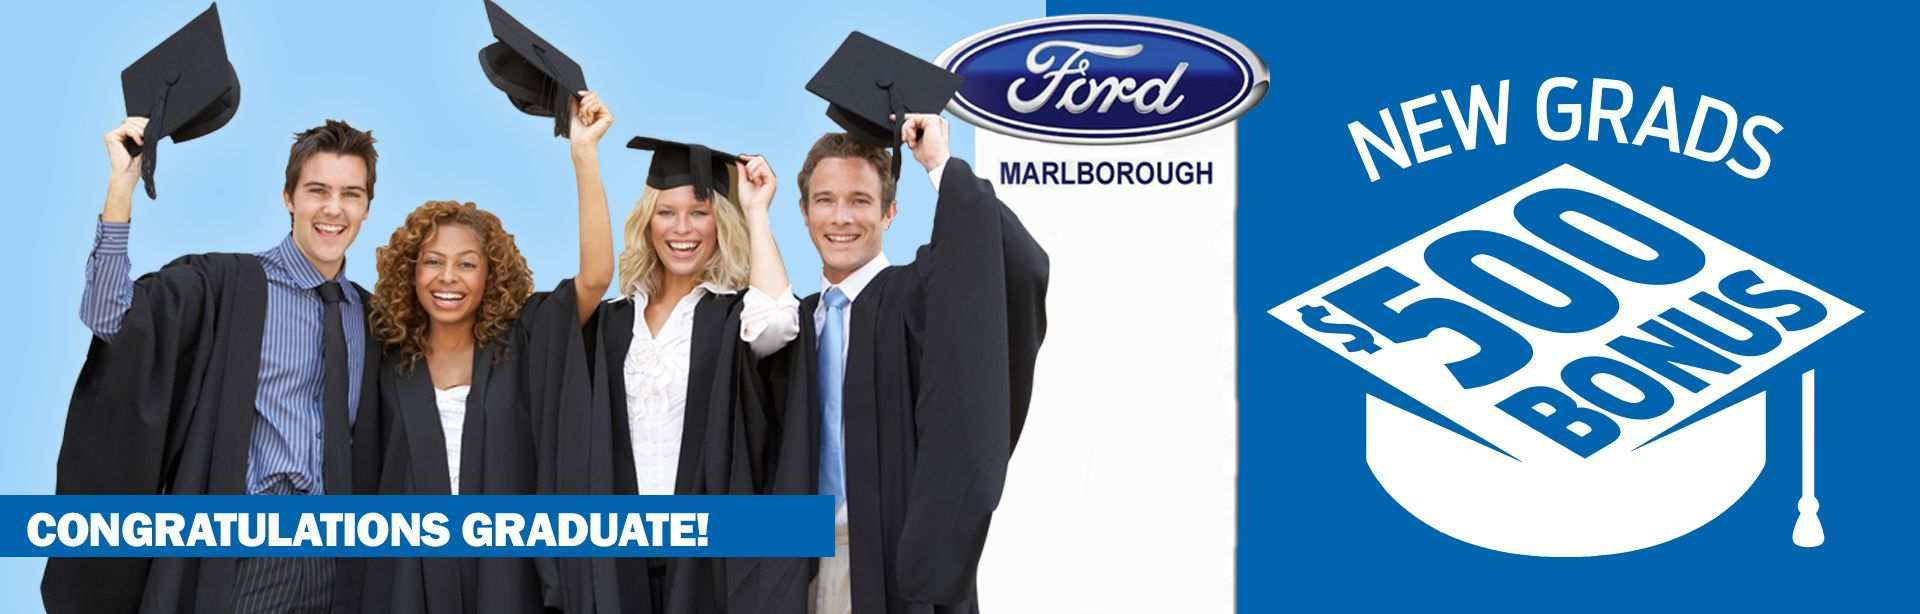 80 Gallery of Ford Graduate Program 2020 Review with Ford Graduate Program 2020